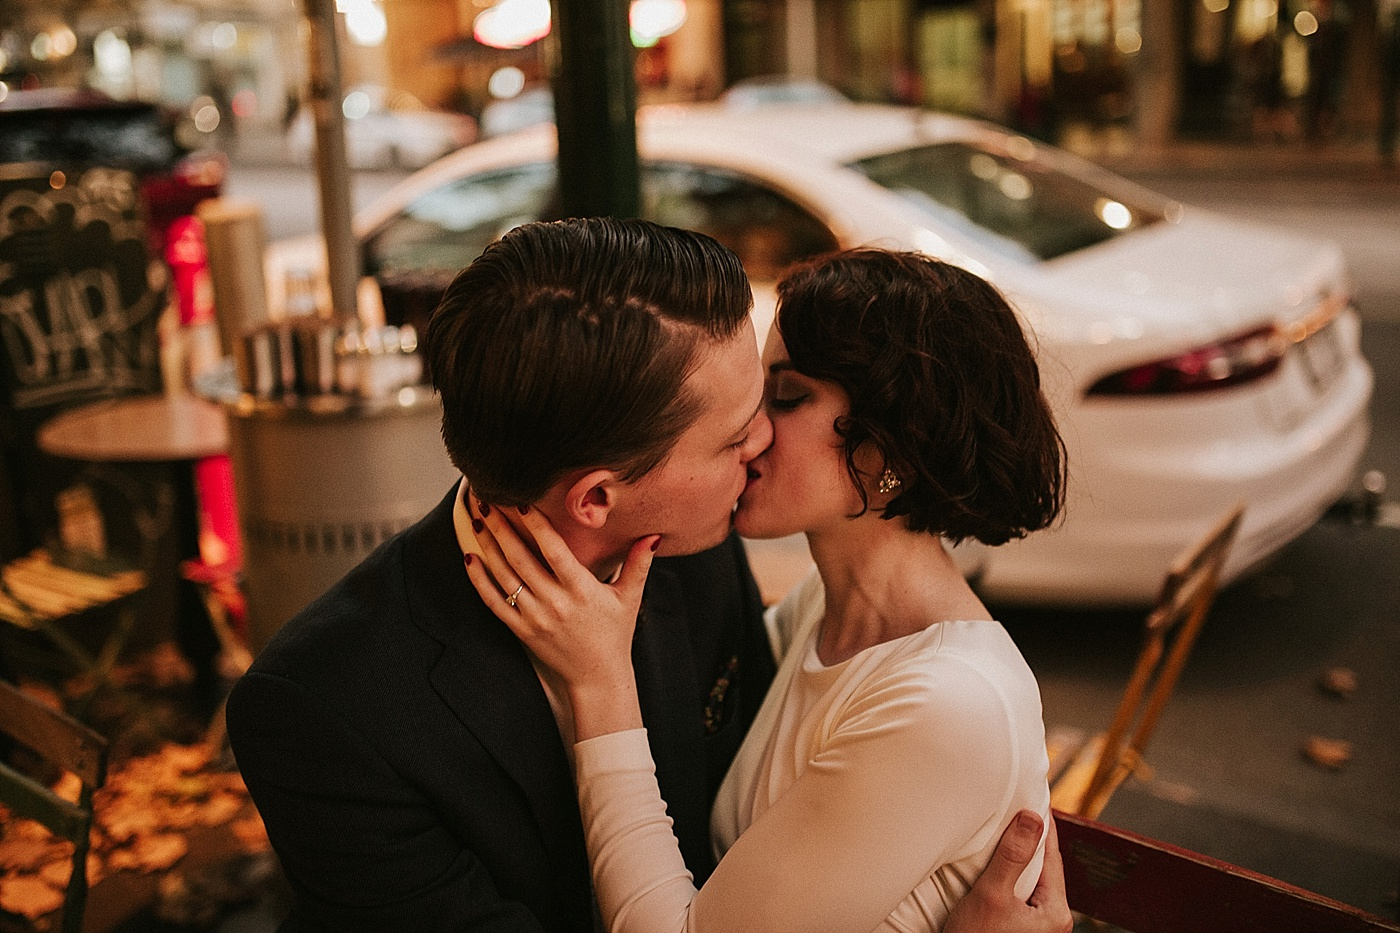 Emma&Morgan_Melbourne-Vintage-Elegant-Fun-CBD-Small-Elopement-Wedding_Melbourne-Wedding-Photography-57